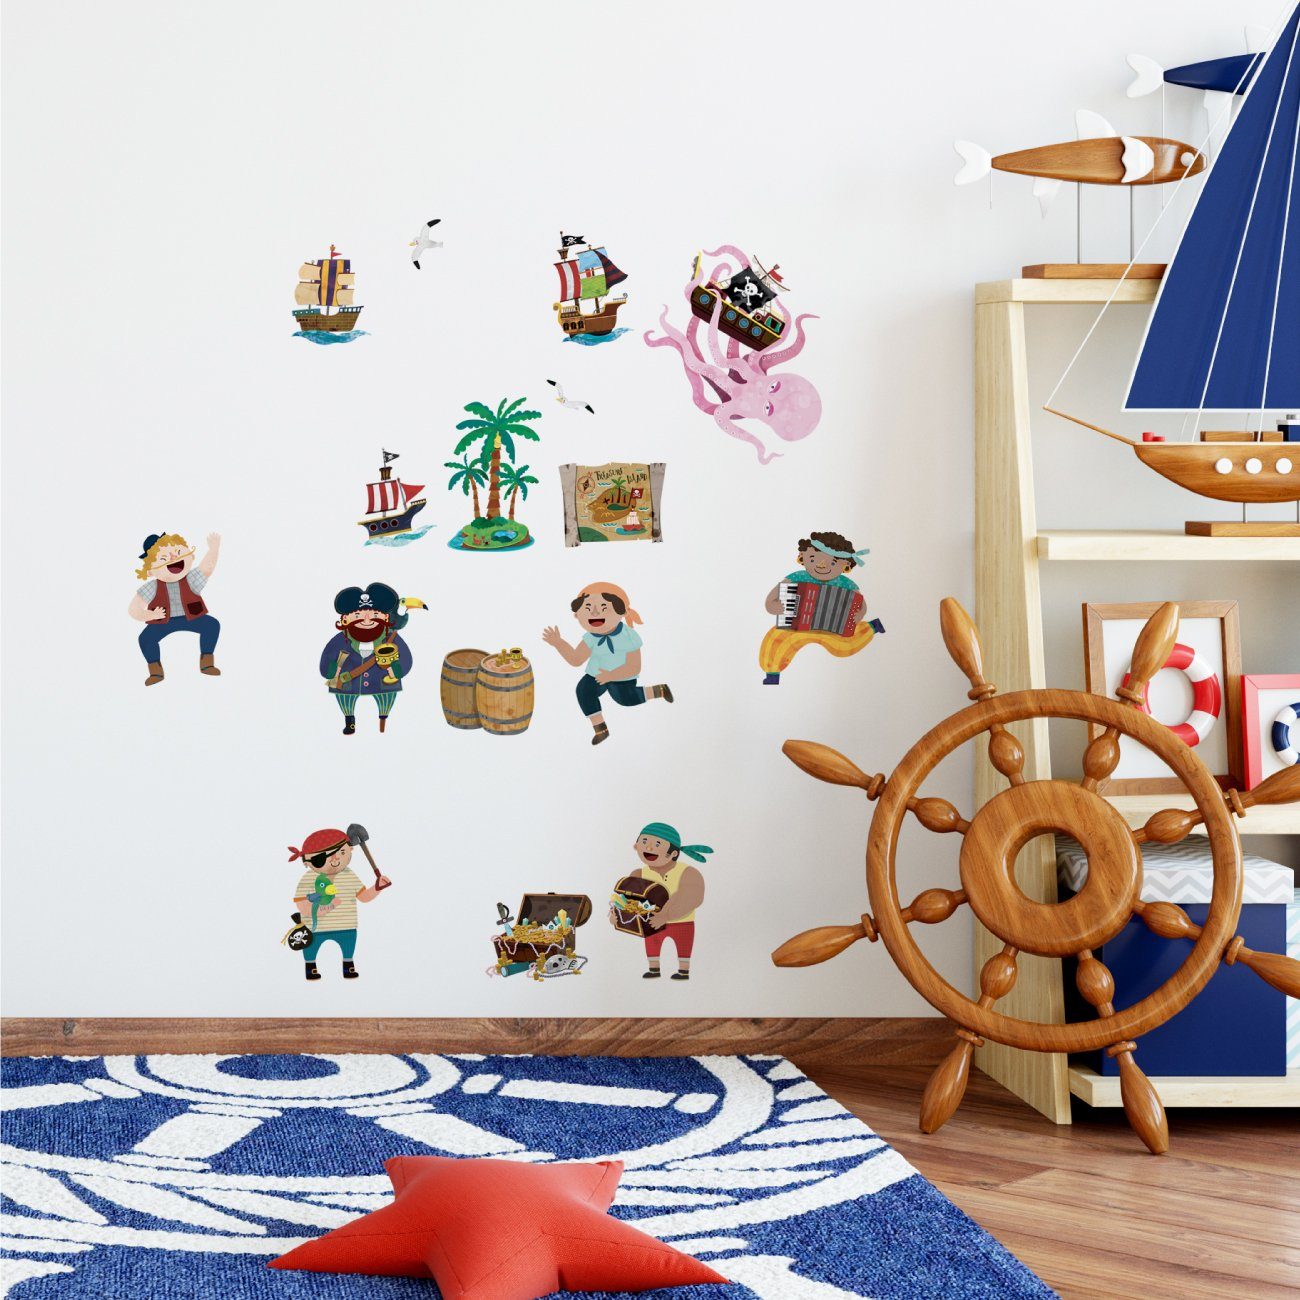 Decowall DS-8010 Pirates /& Treasure Island Kids Wall Stickers Wall Decals Peel and Stick Removable Wall Stickers for Kids Nursery Bedroom Living Room Small